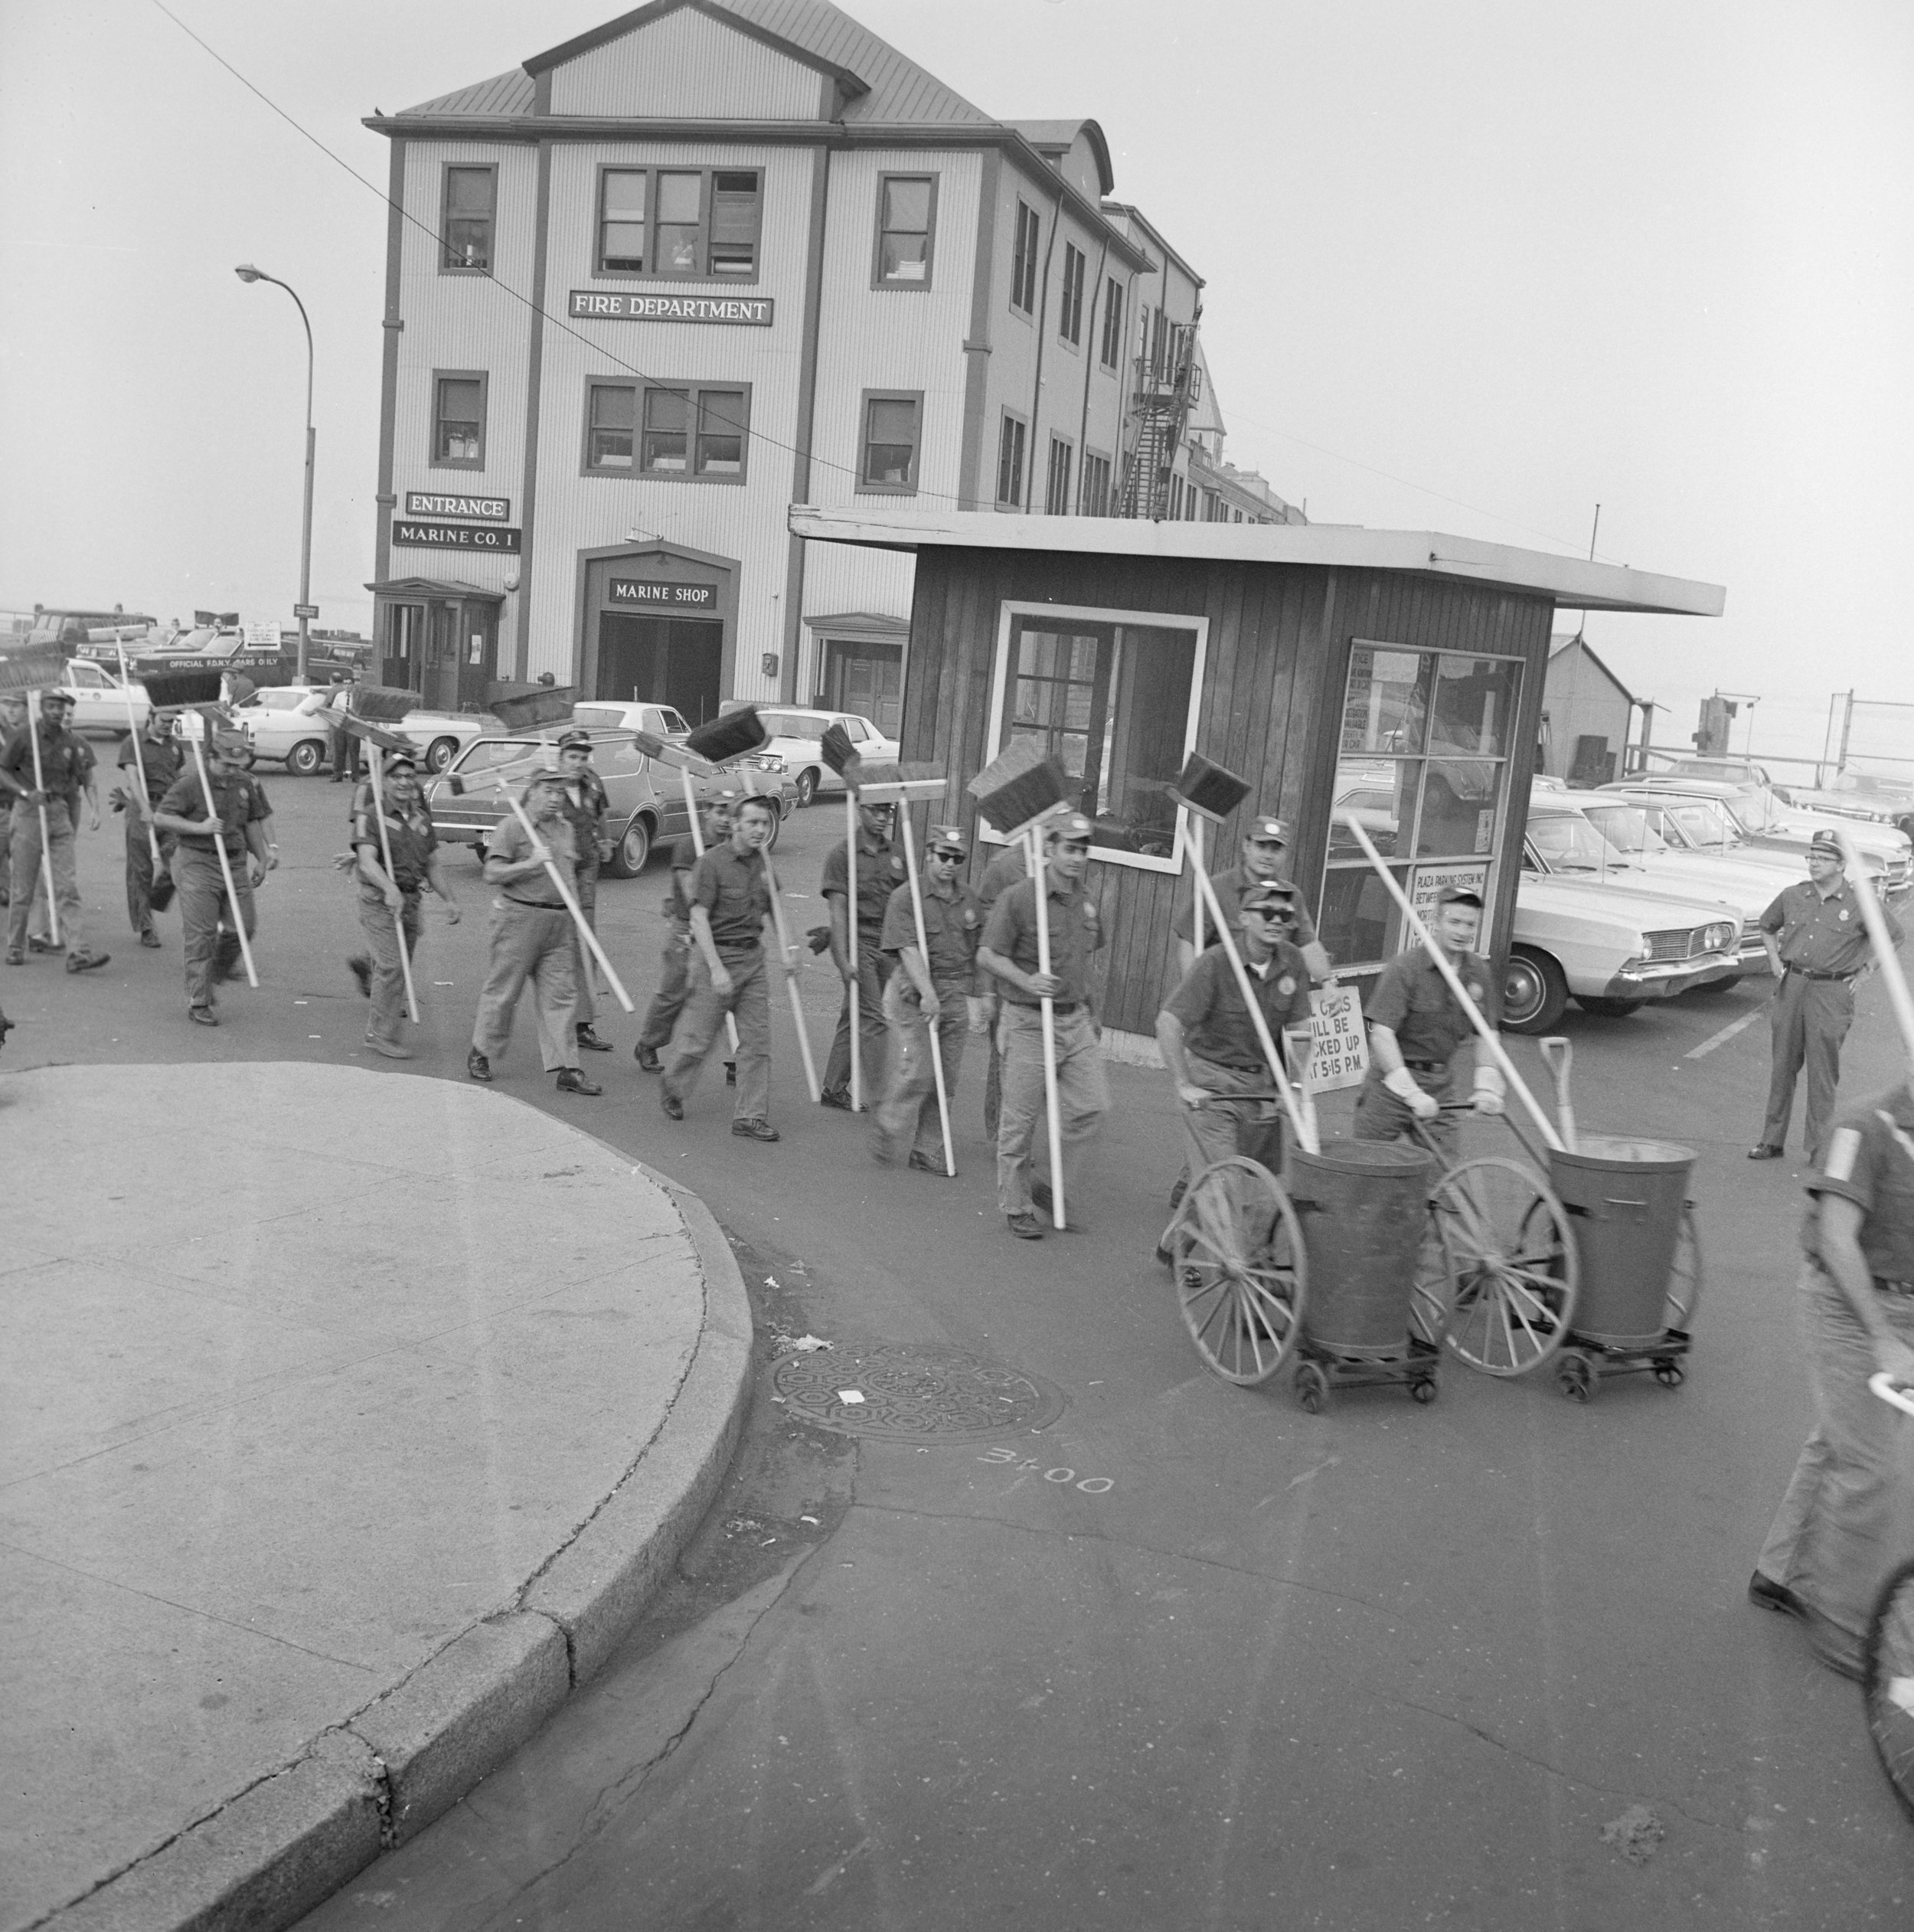 Sanitation workers in front of Pier A preparing to clean up after the parade, August 13, 1969. Department of Sanitation Collection, NYC Municipal Archives.